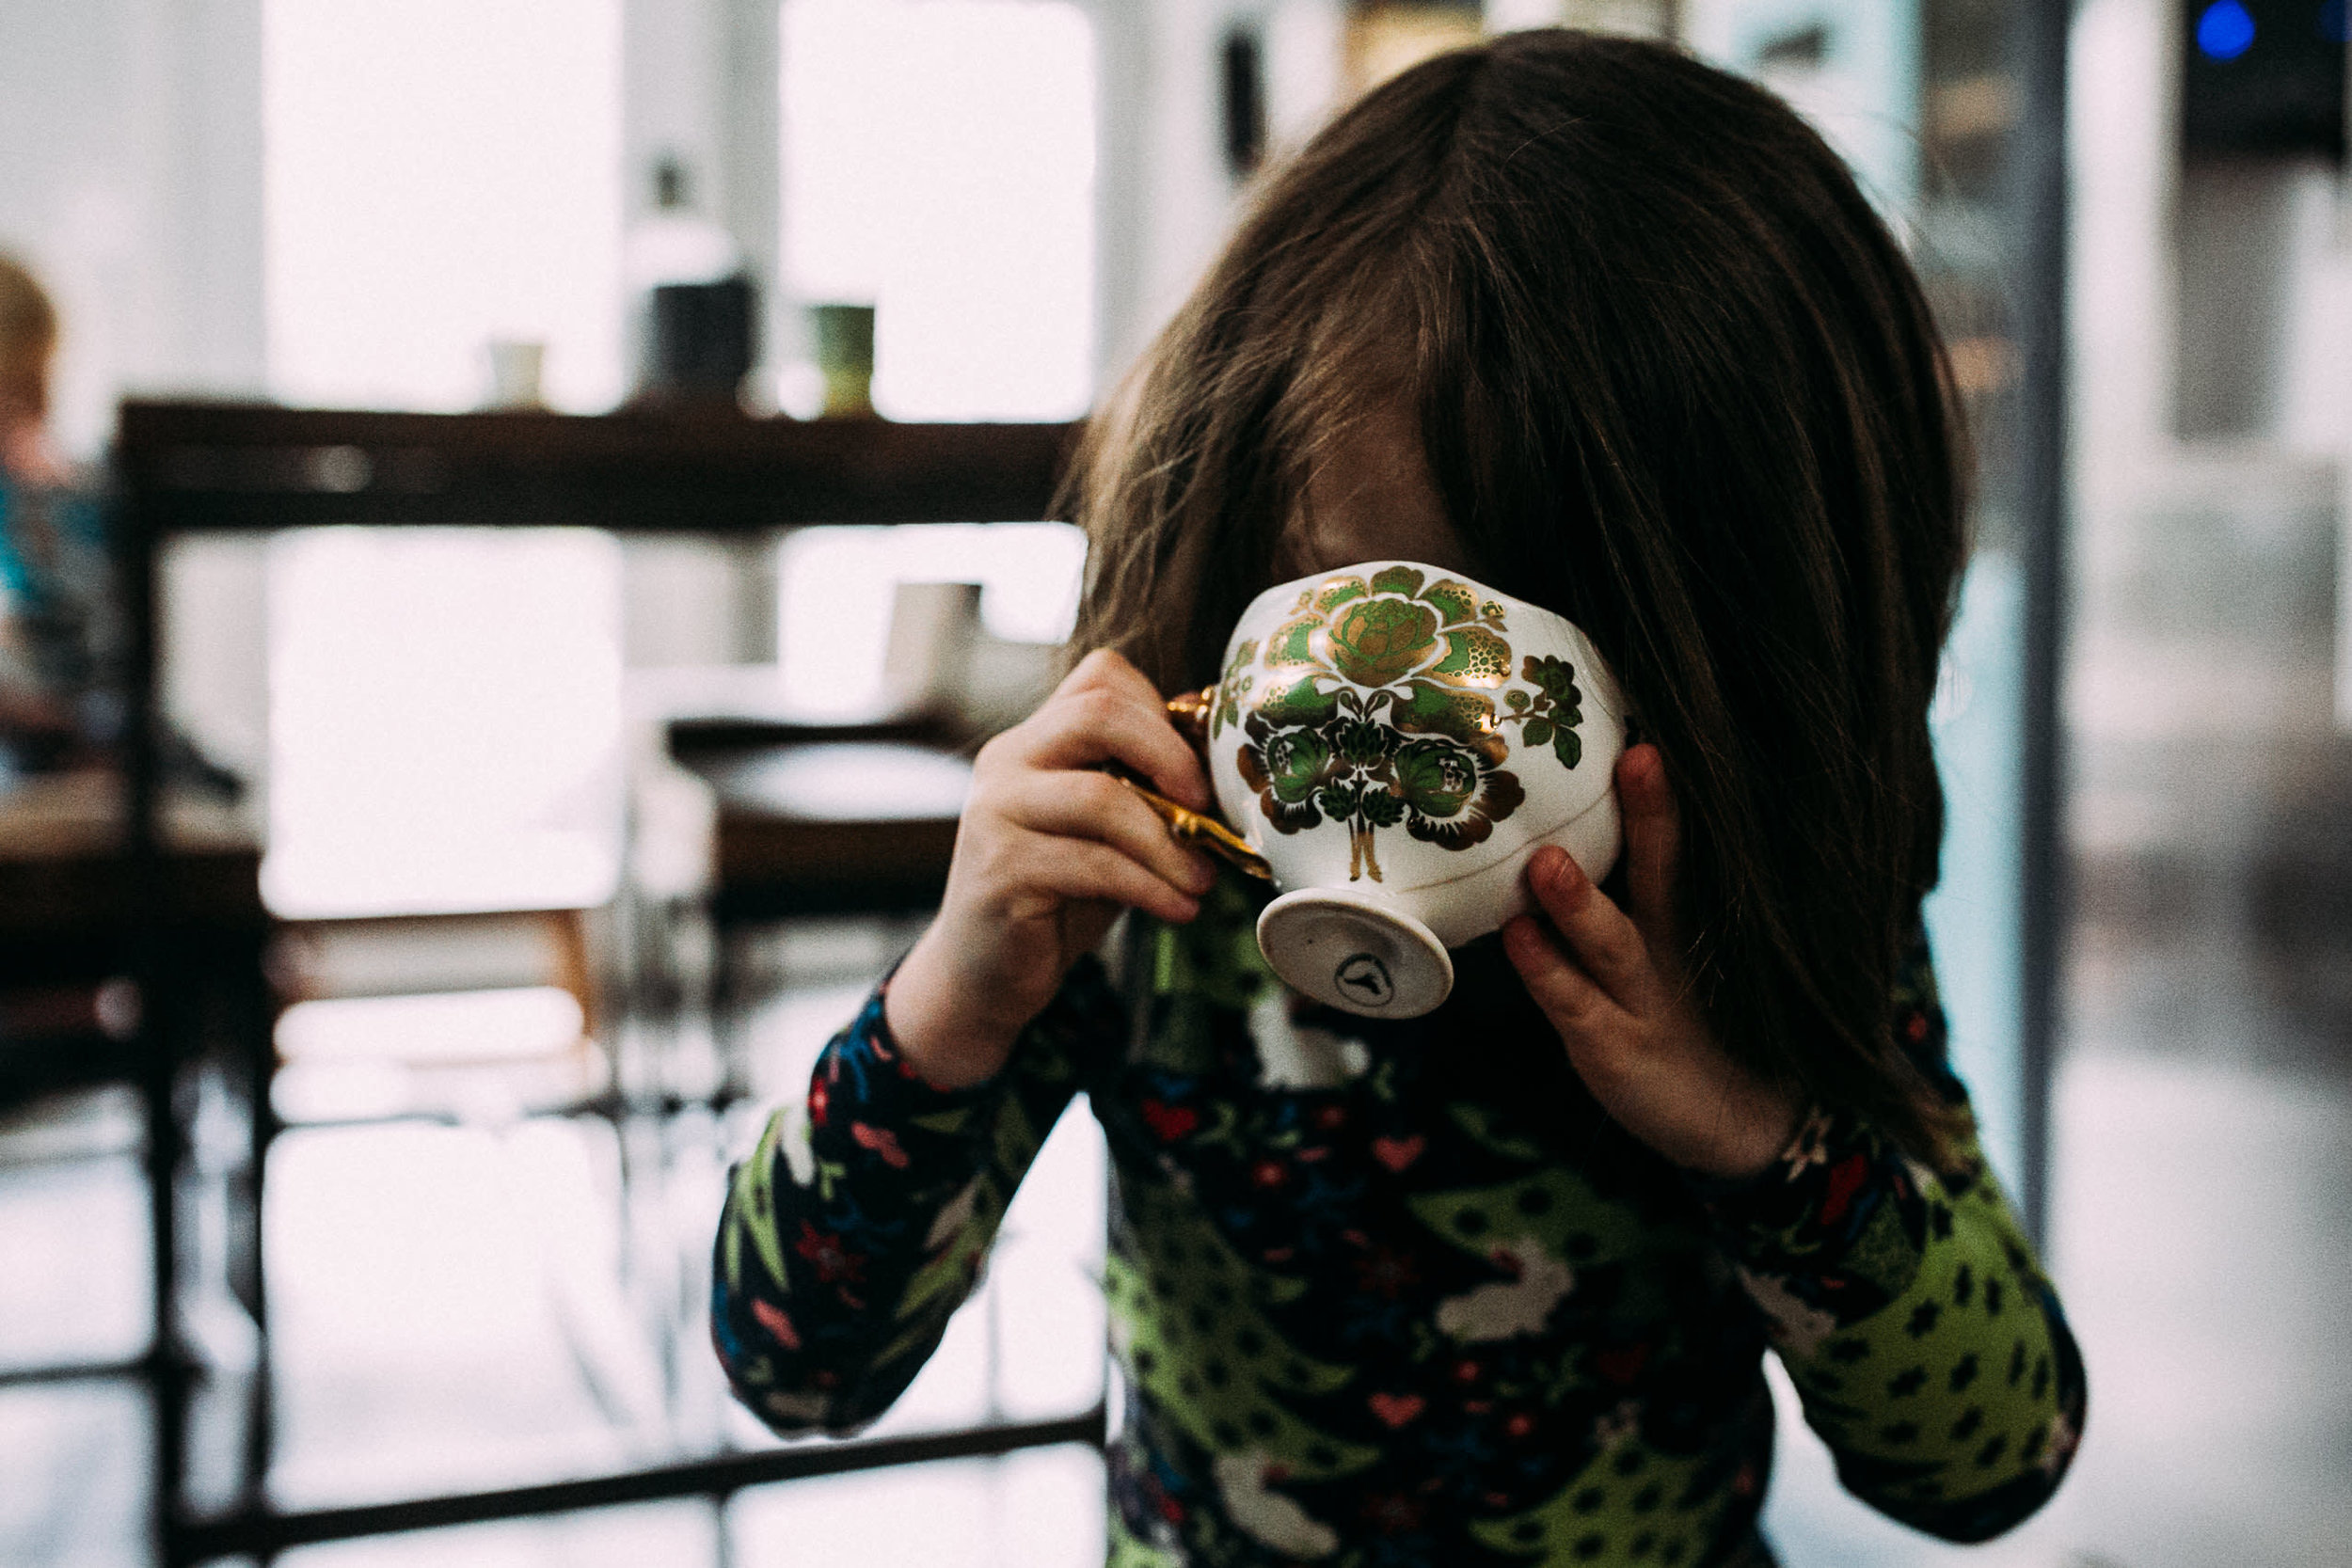 A girl drinks from a green floral teacup